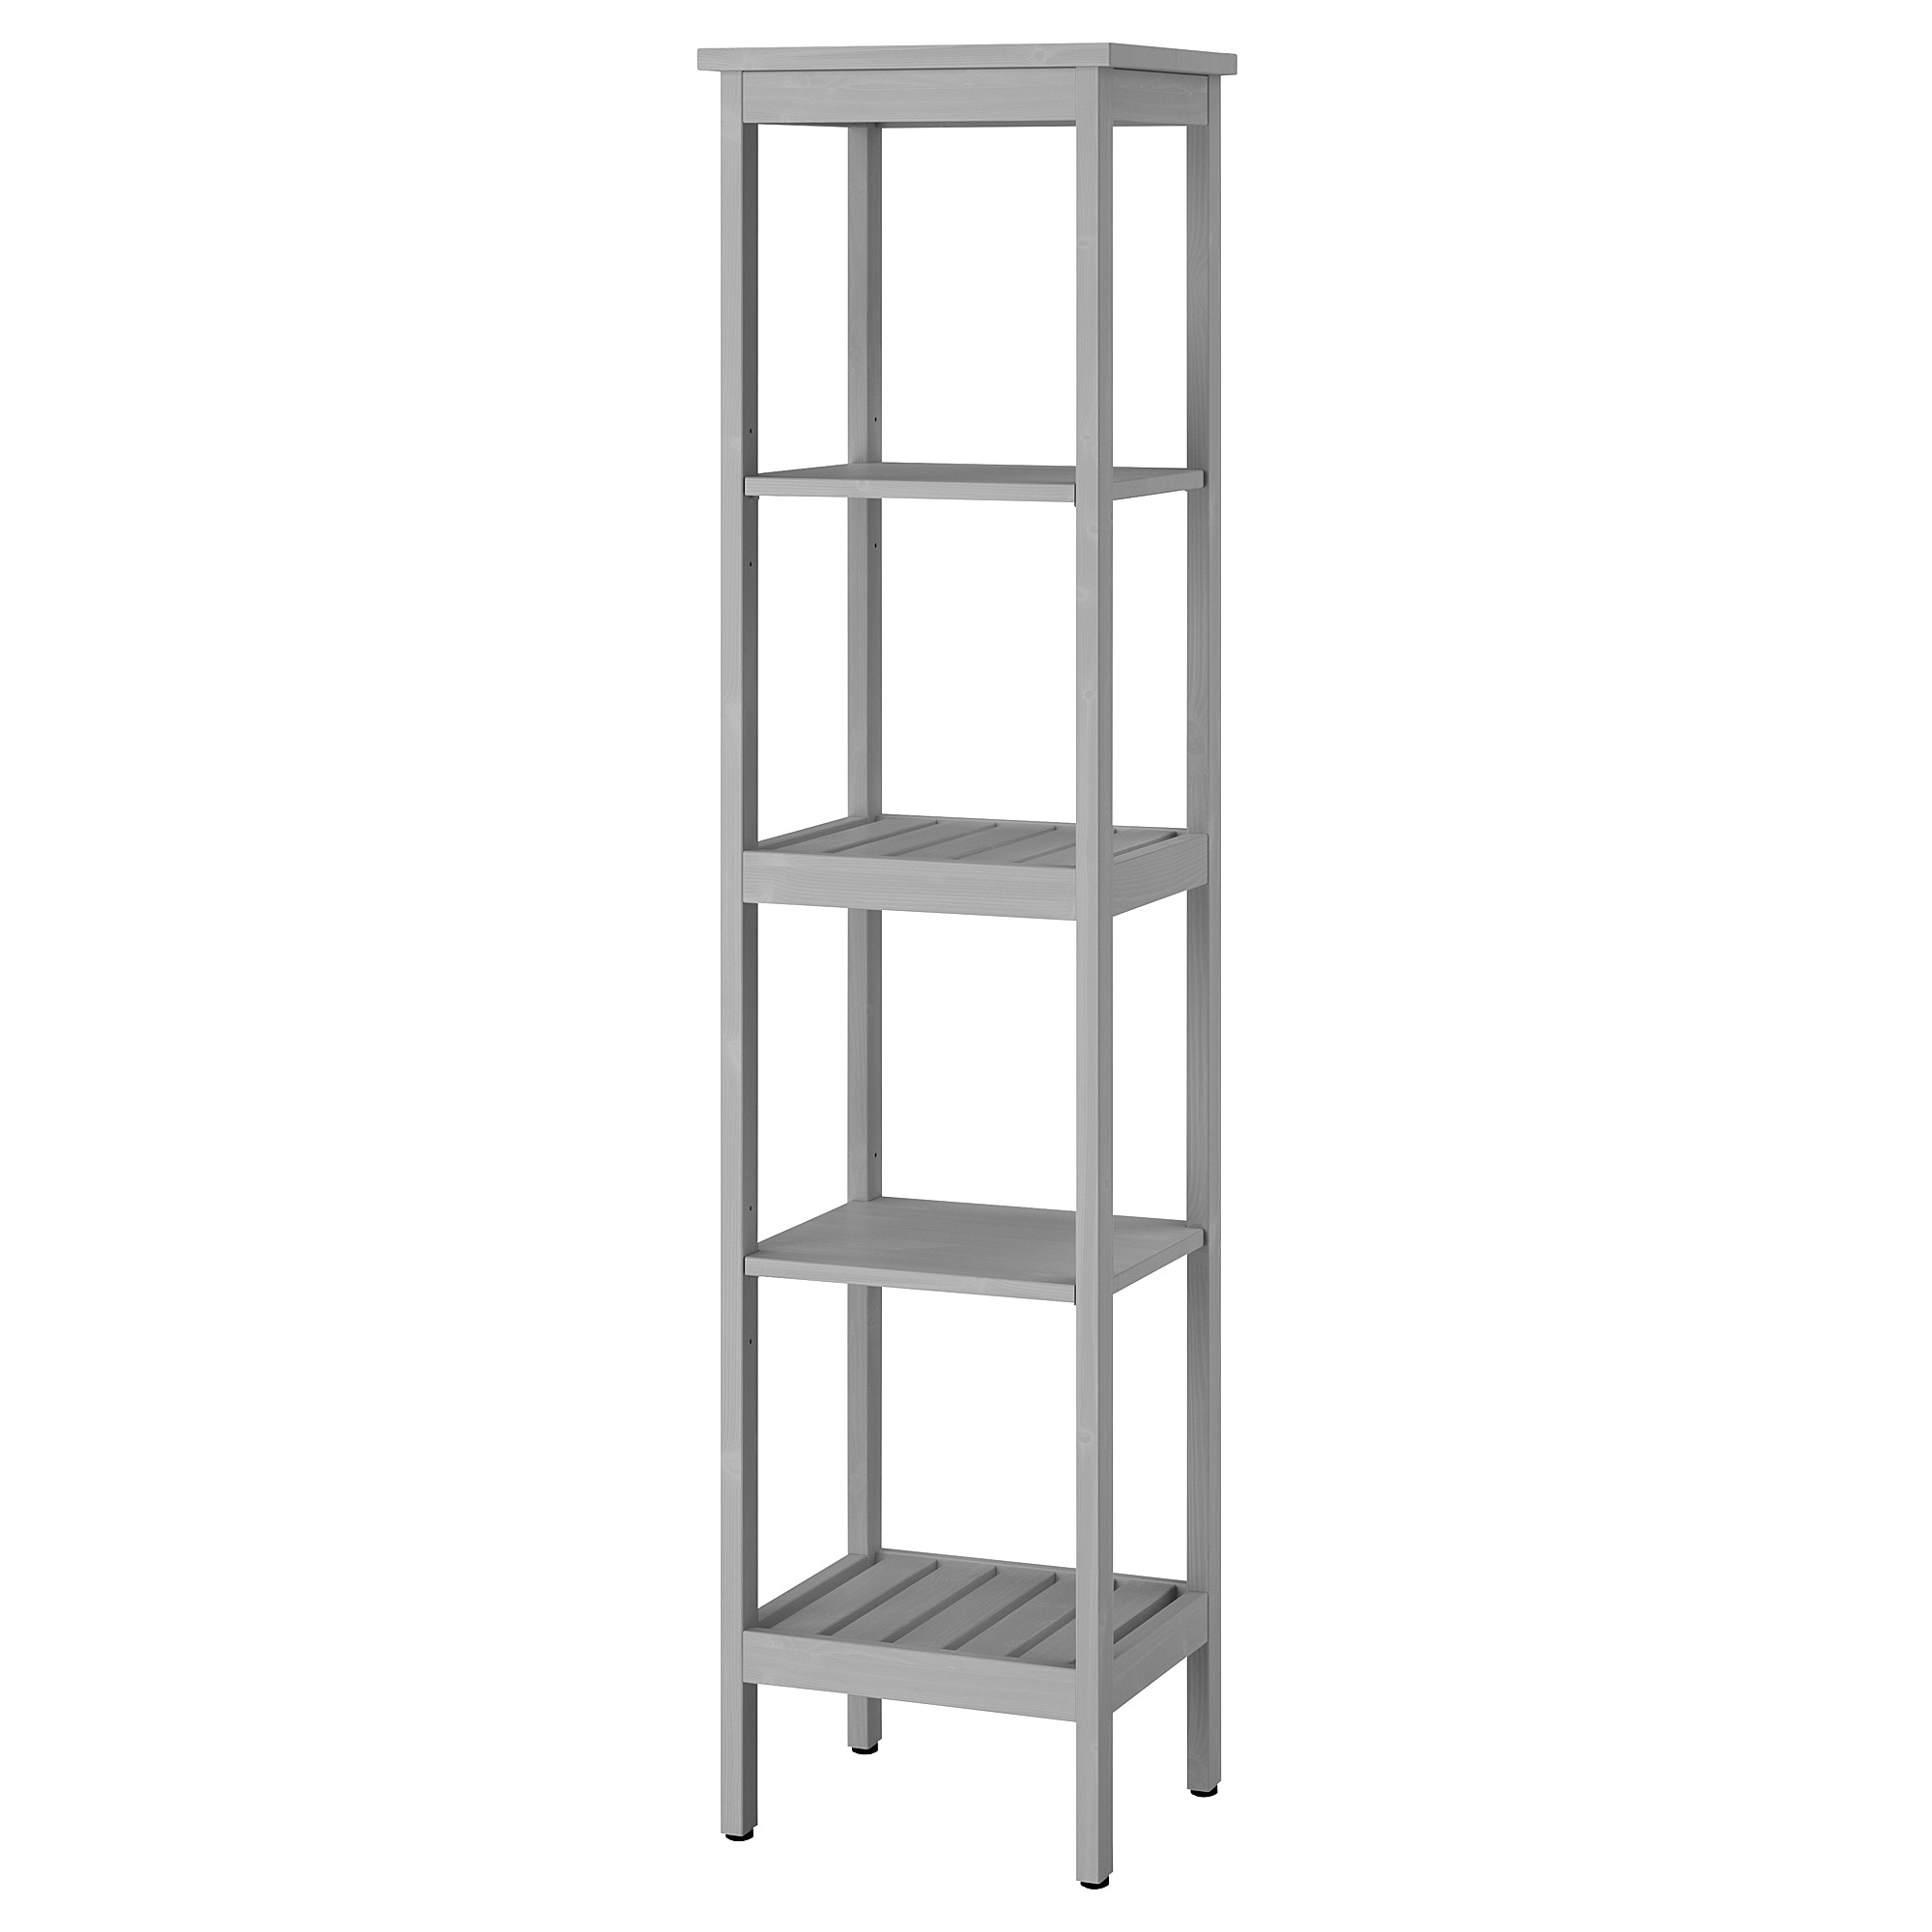 hemnes regal - weiß - ikea